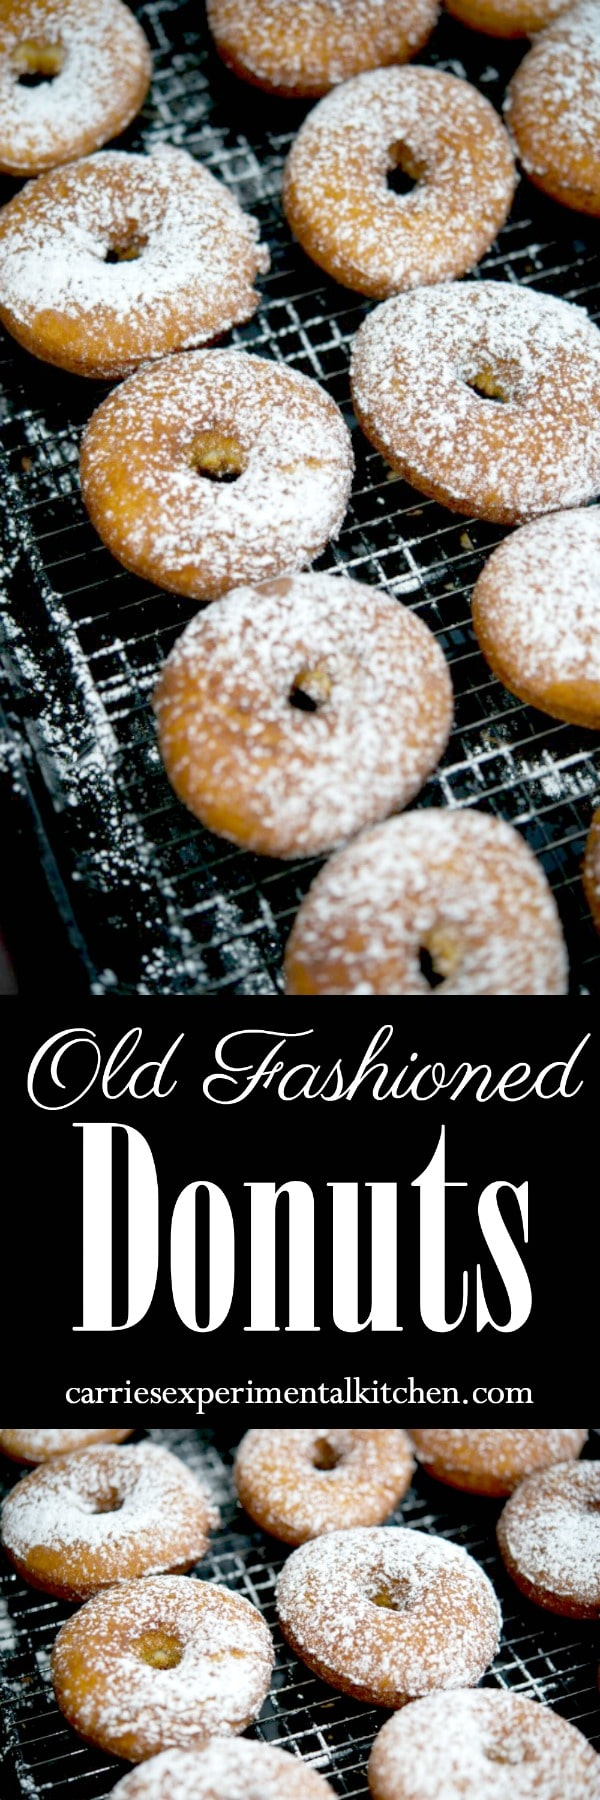 Make your own old fashioned, bakery style donuts at home with readily available pantry ingredients. #donuts #dessert #breakfast